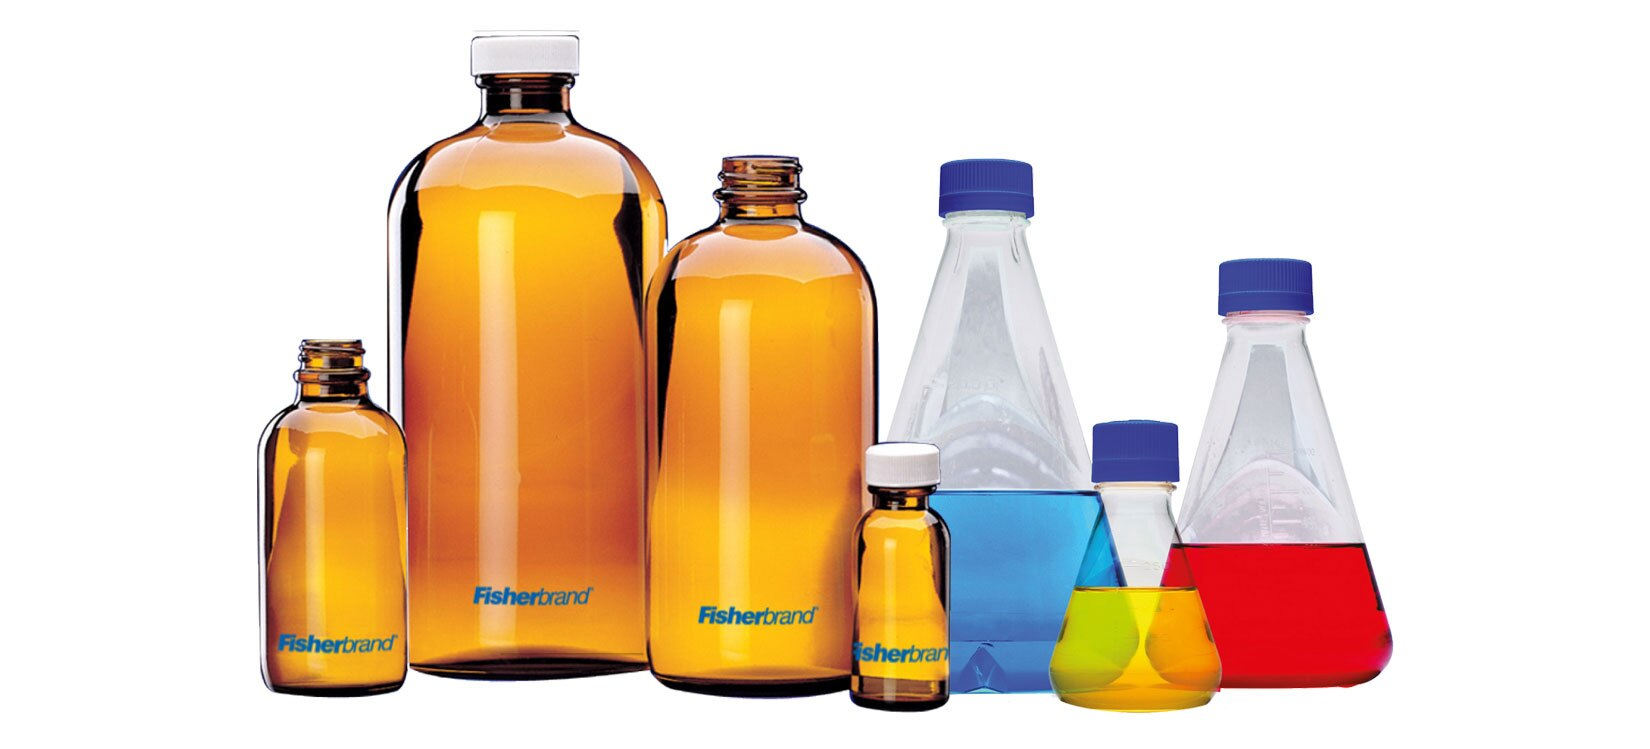 Glass and plastic ware bottles - Fisherbrand